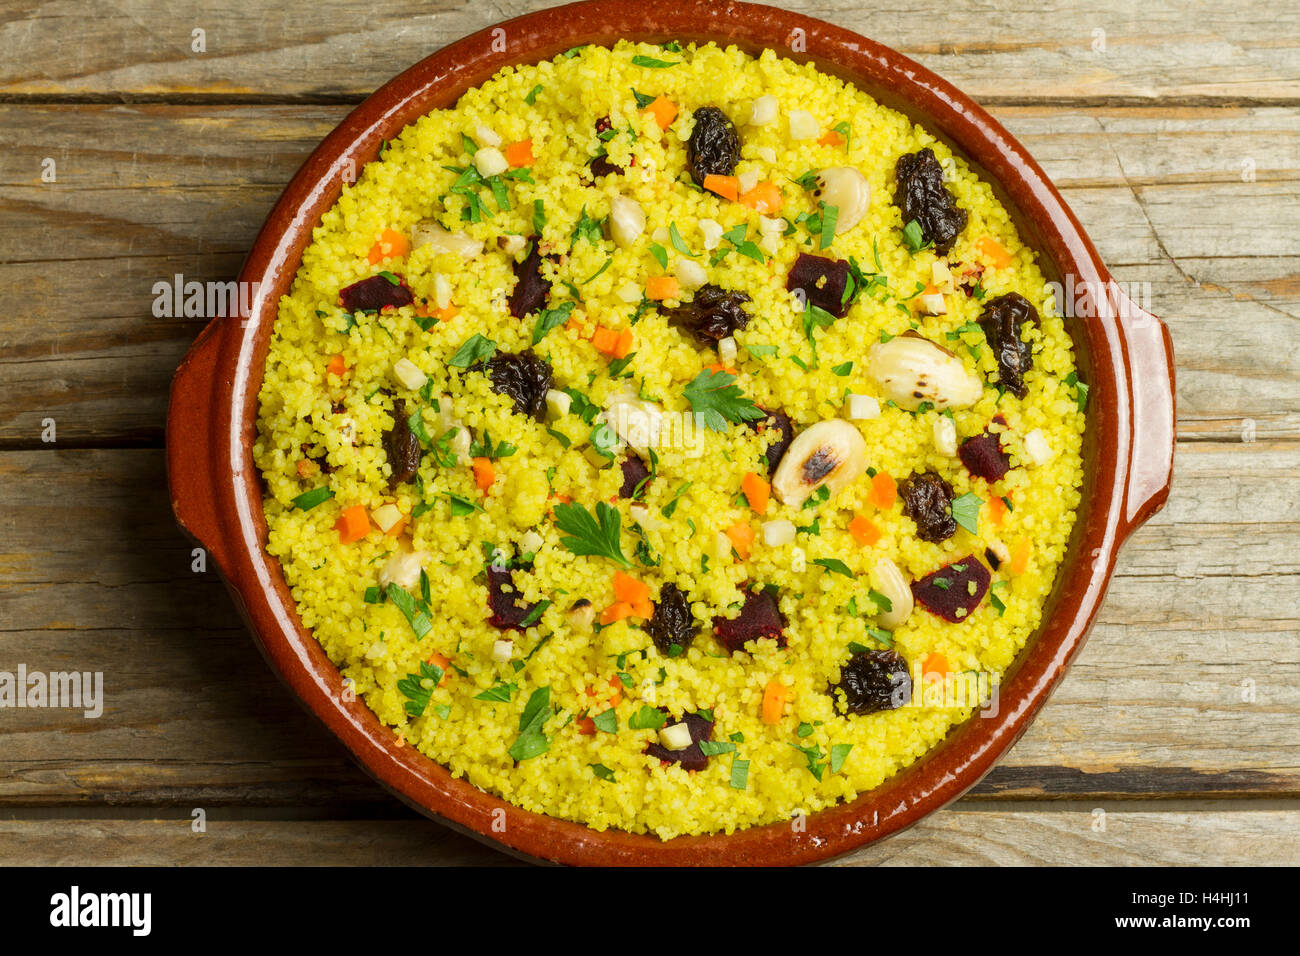 Couscous in an earthenware pot on a wooden table - Stock Image